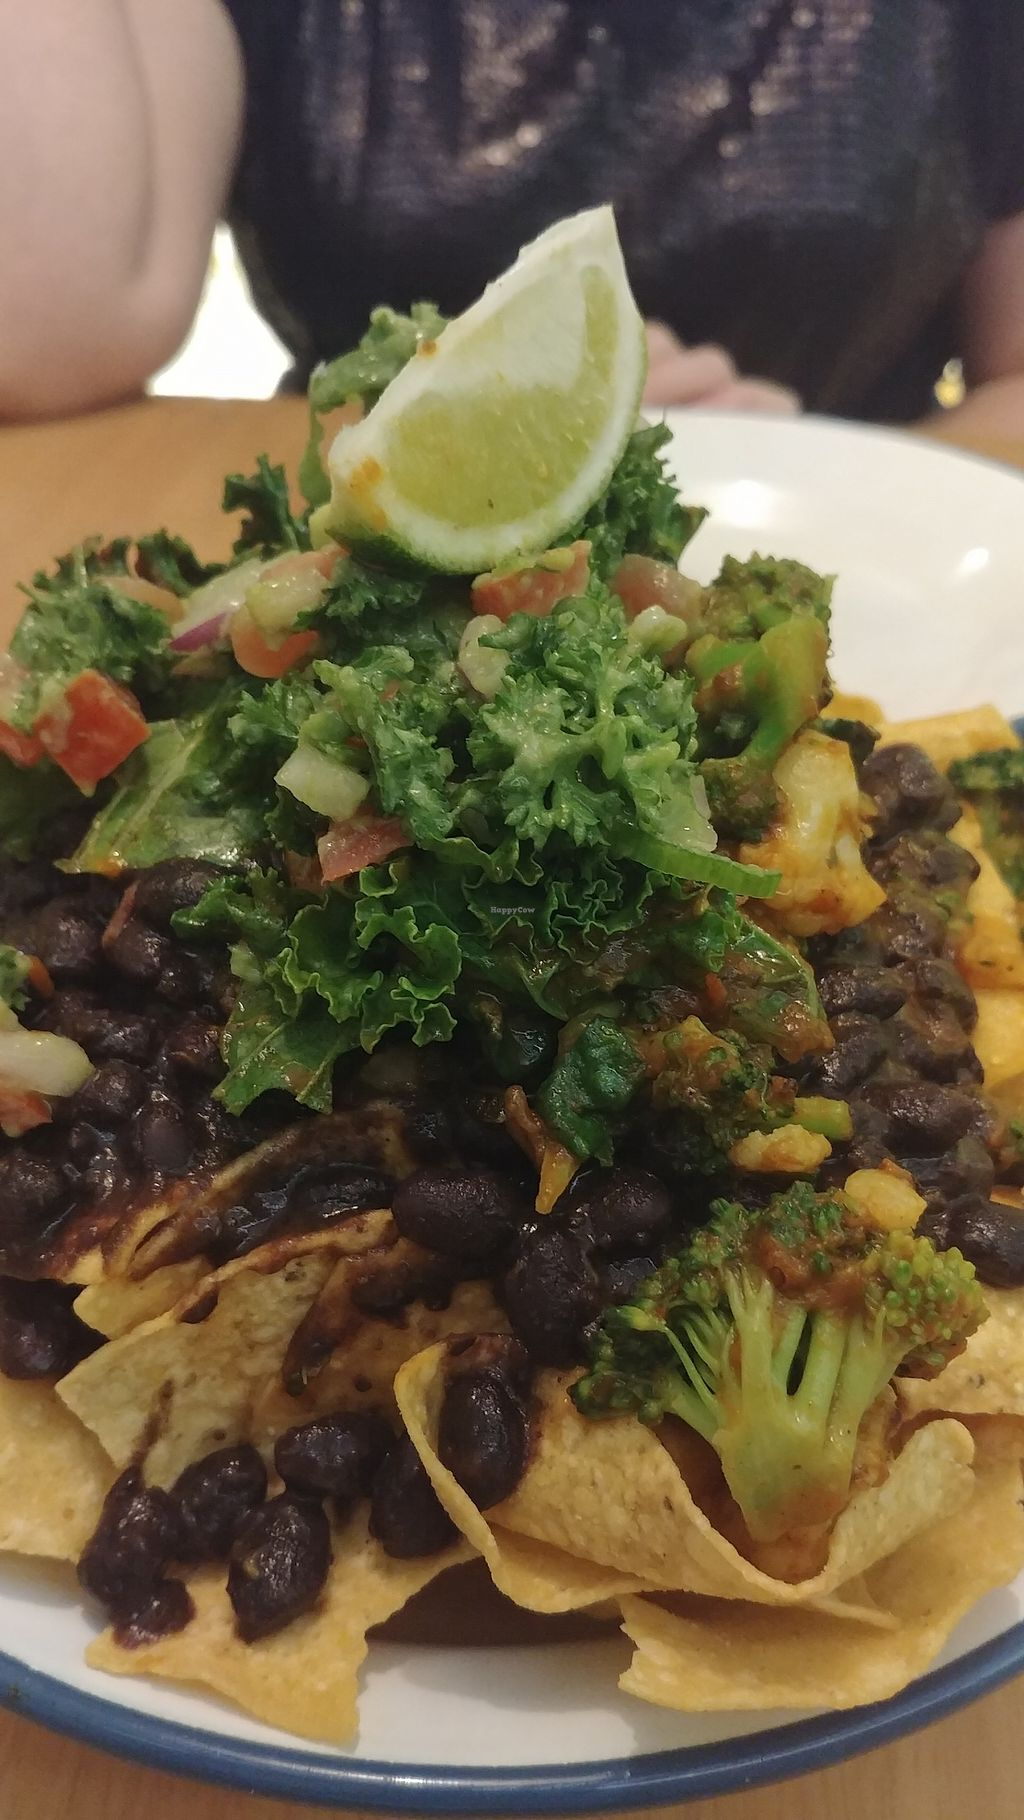 """Photo of Fiery Deli  by <a href=""""/members/profile/karlaess"""">karlaess</a> <br/>Vegan nachos <br/> January 23, 2018  - <a href='/contact/abuse/image/107587/350029'>Report</a>"""